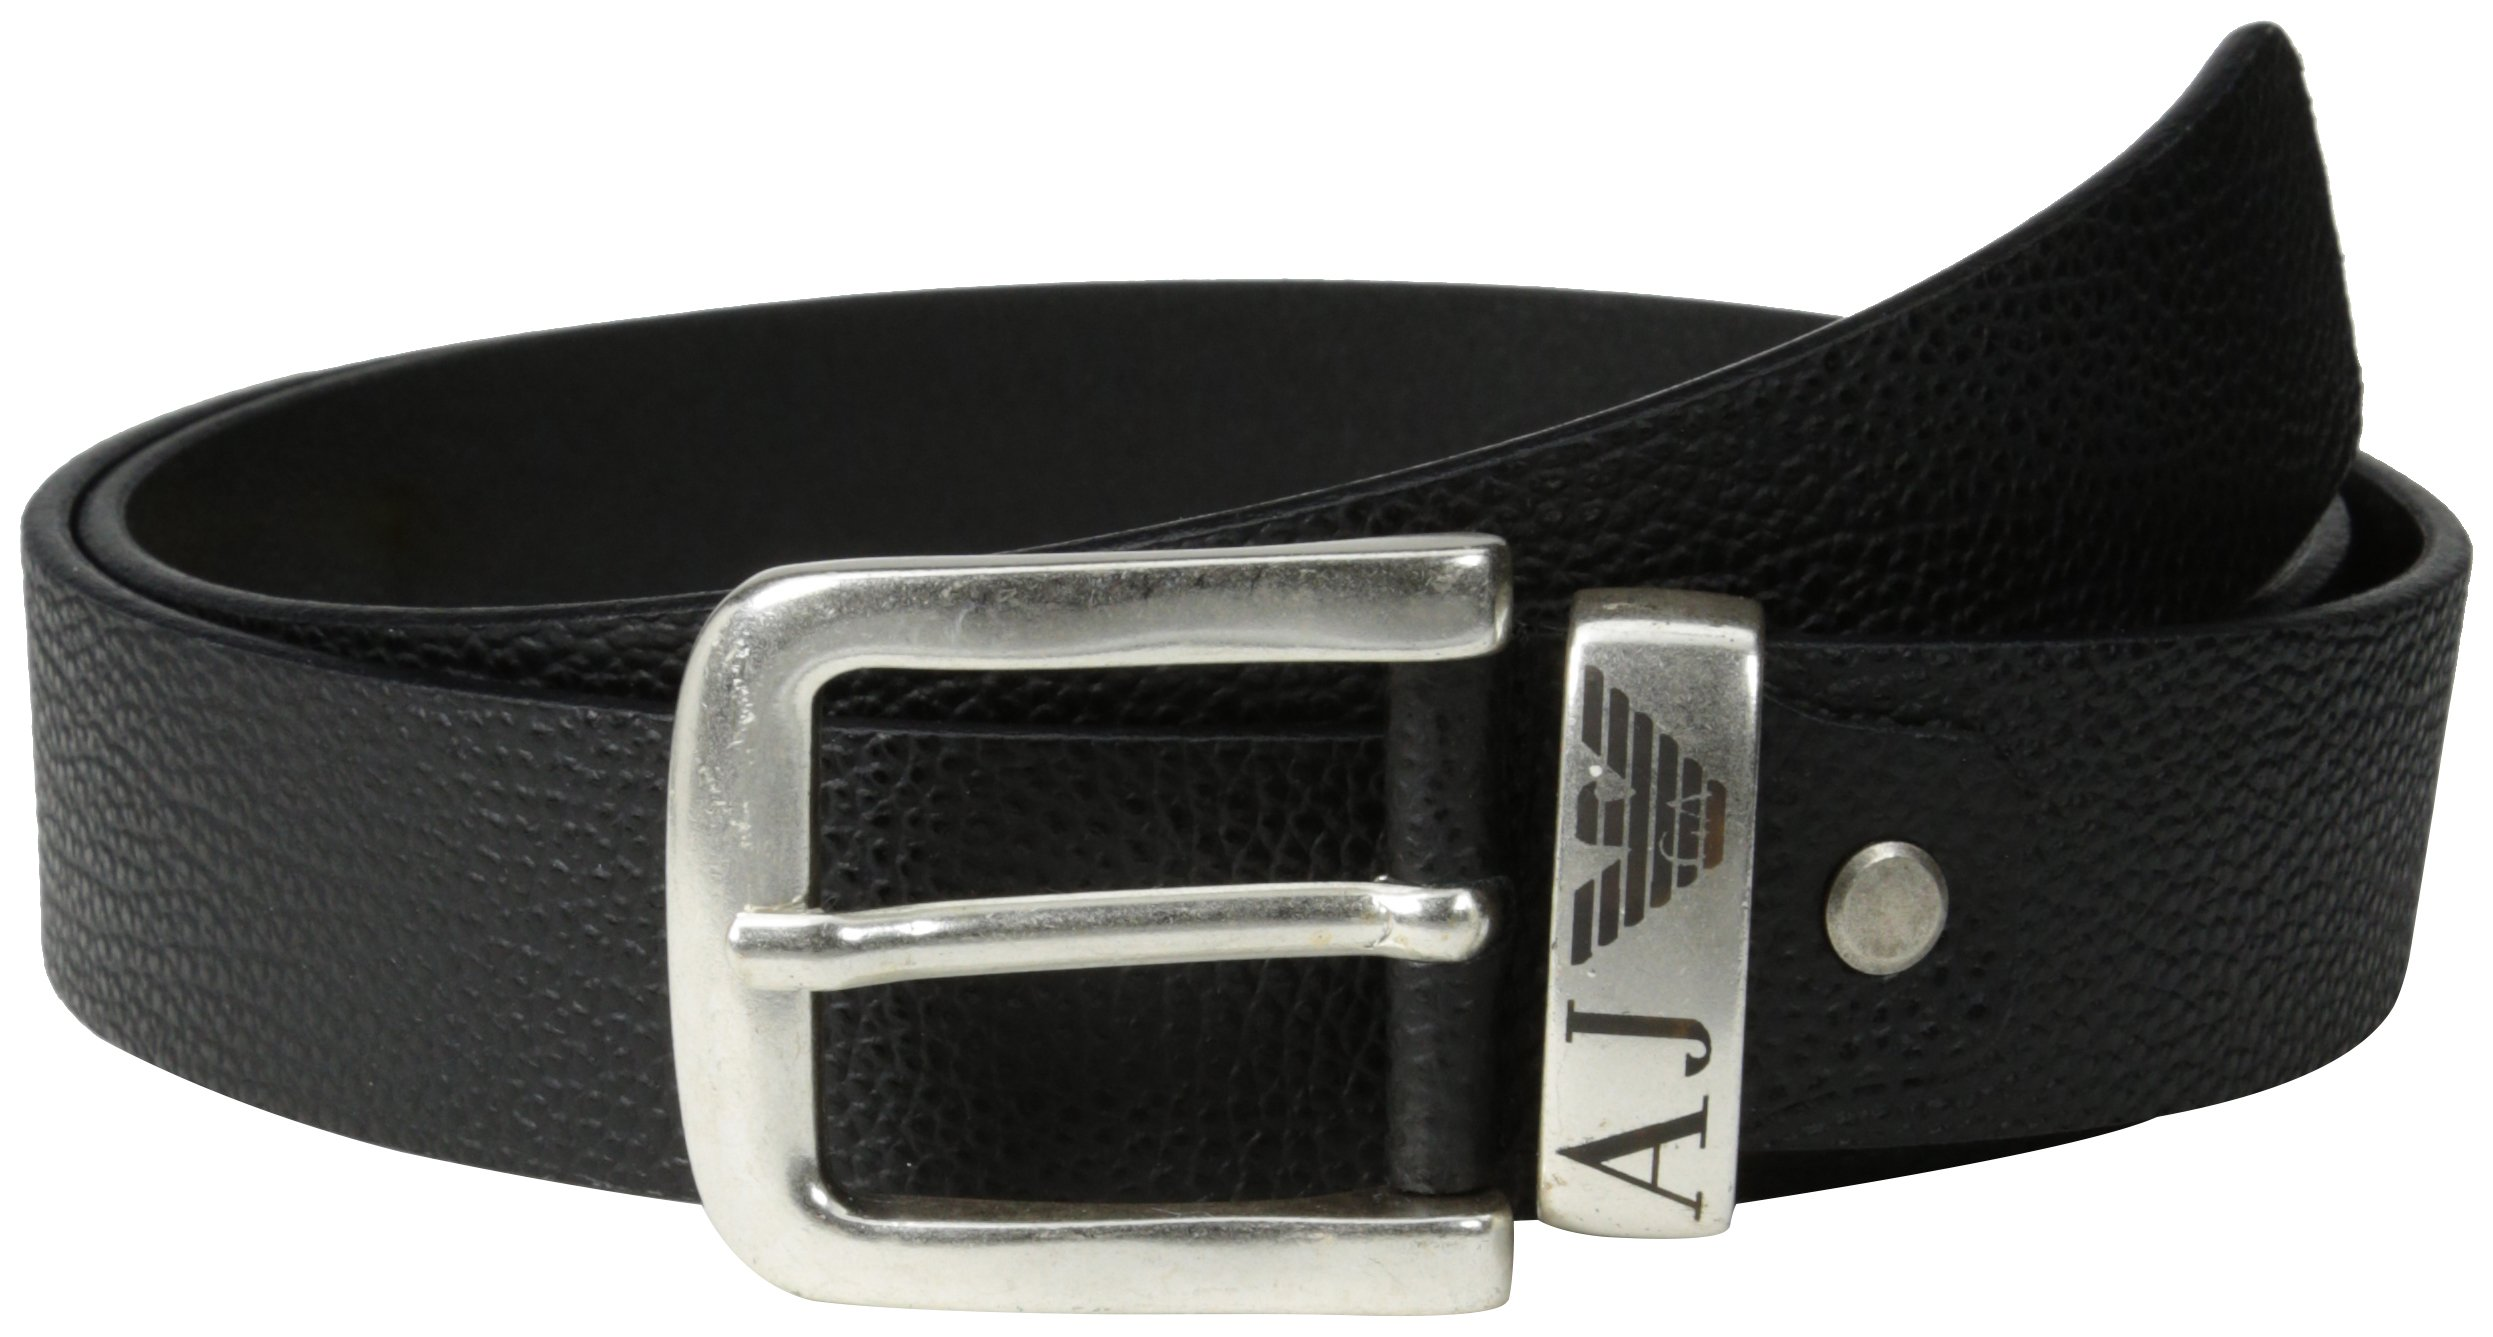 Armani Jeans Men's R6 Belt with Logo On Keeper, Black, One Size by ARMANI JEANS